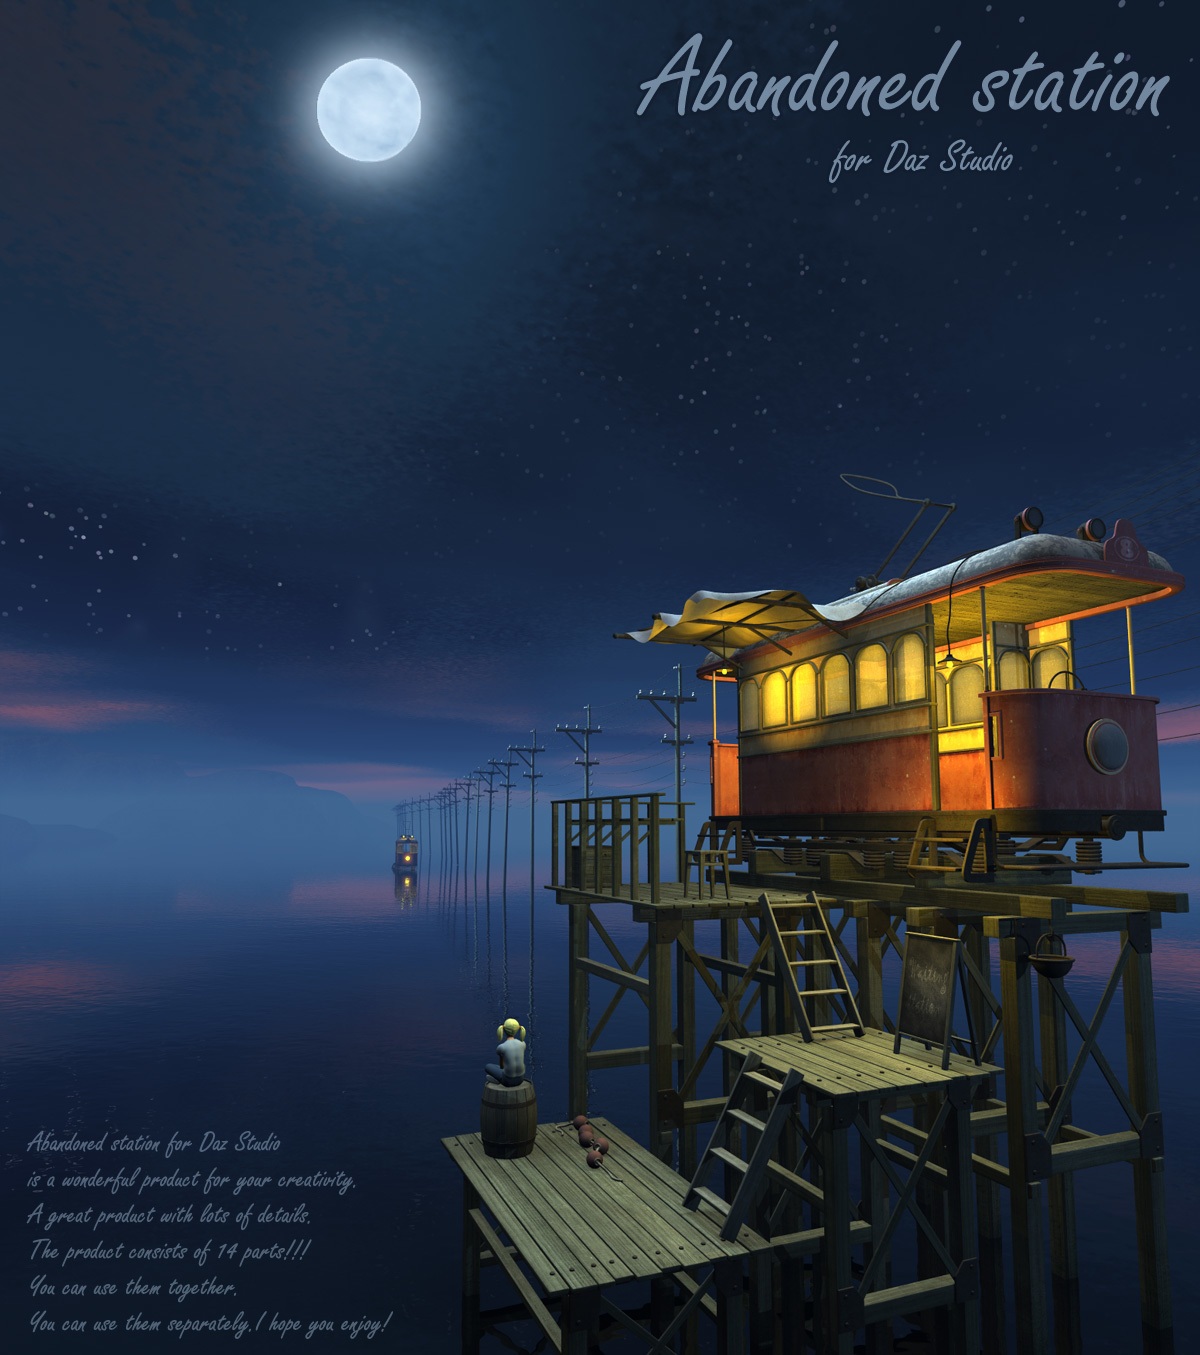 Abandoned station for Daz Studio by 1971s